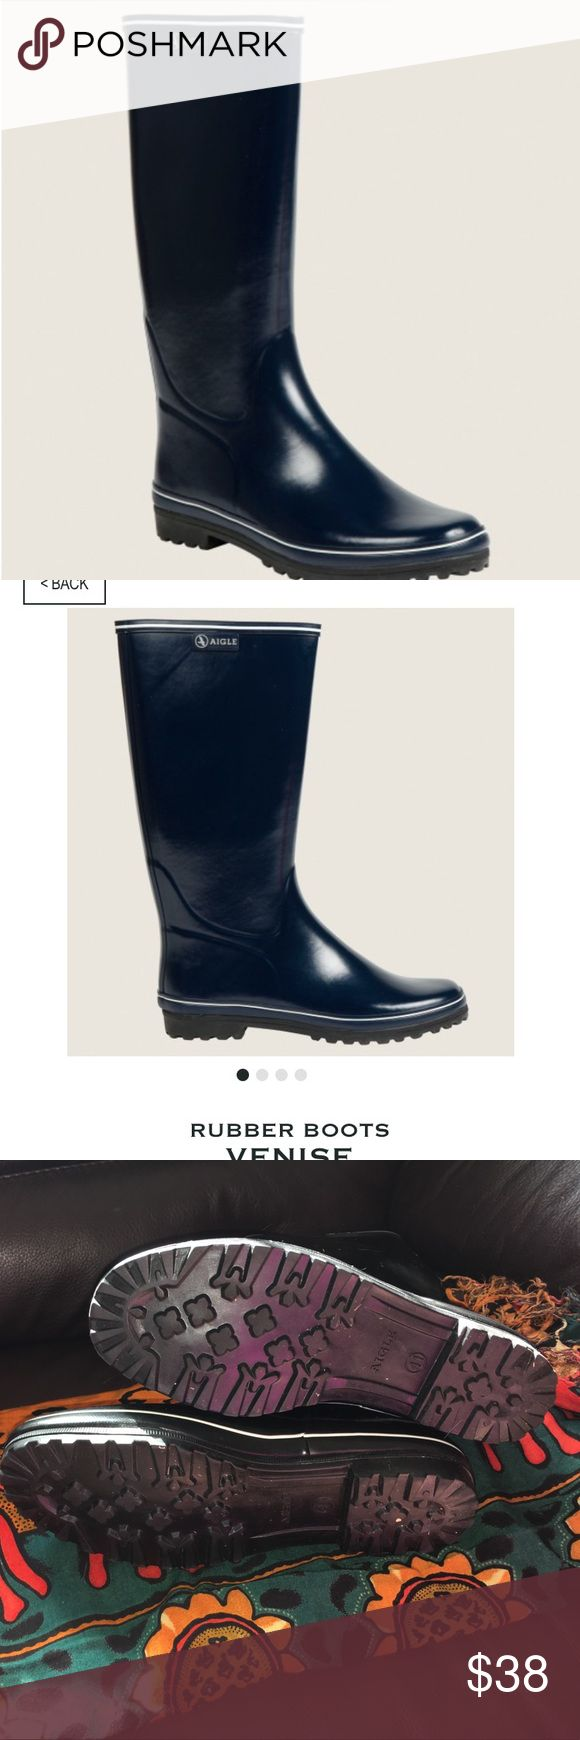 Aigle riding - water boots.  Model is Venise The Aigle boot requires no special care. Made of Aigle's flexible, waterproof Slush®, this tall riding boot has a moisture-wicking lining and interior leather collar.   Equestrian boots. Water boots. Everything boots Aigle Shoes Winter & Rain Boots